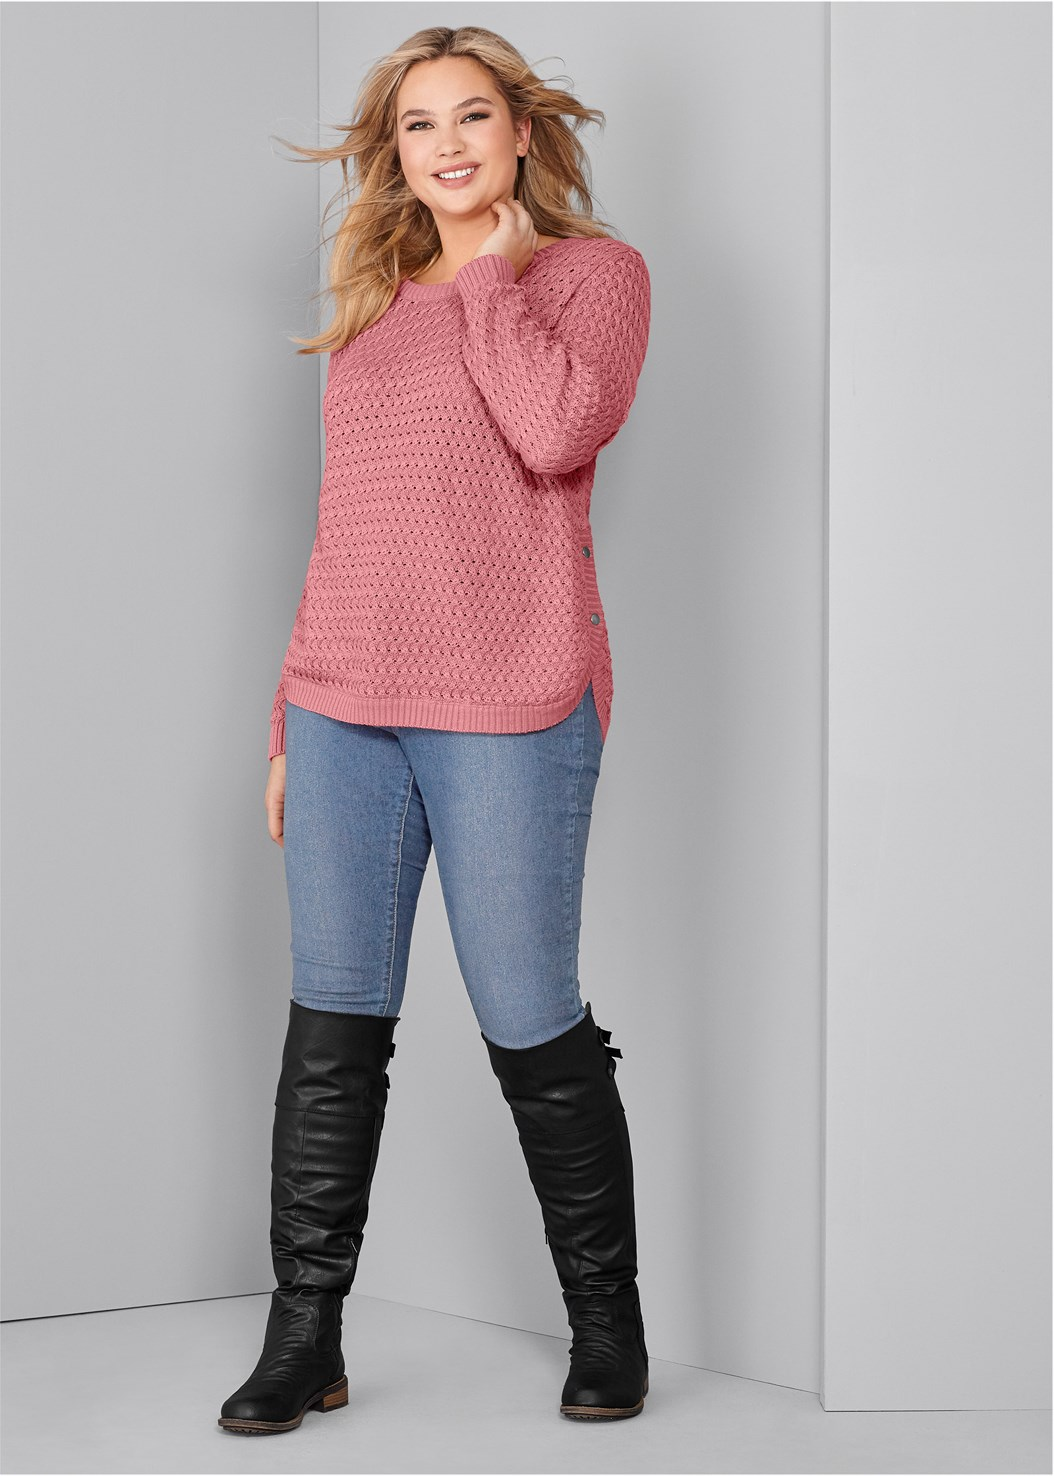 Button Detail Sweater,Basic Cami Two Pack,Mid Rise Color Skinny Jeans,Buckle Knee High Boots,Stud Detail Scarf